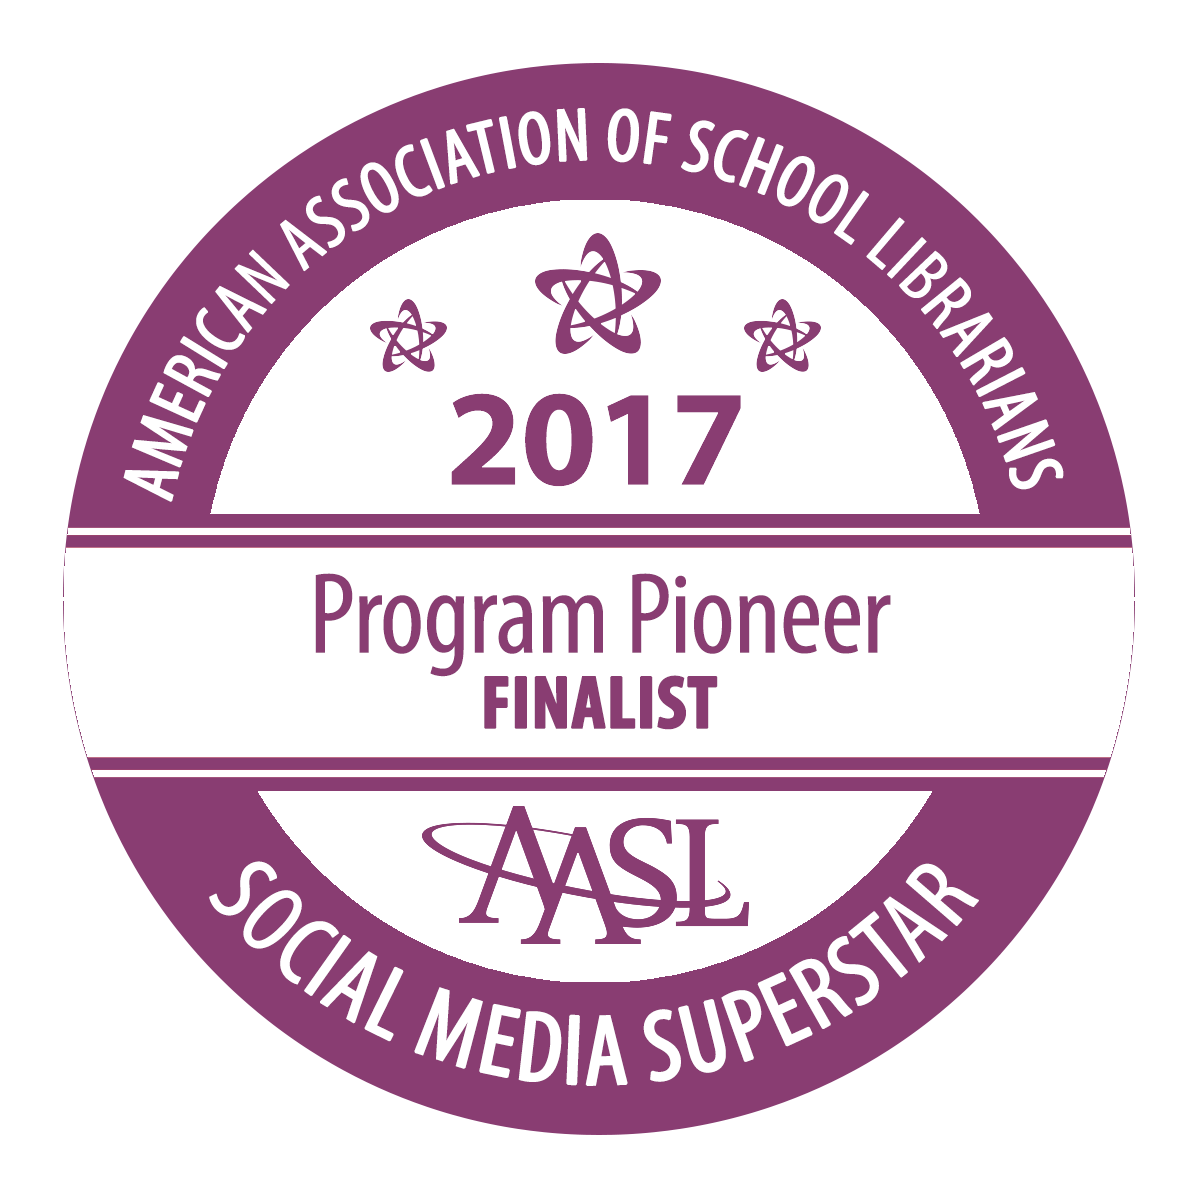 AASL Social Media Superstar Finalist and Recipient